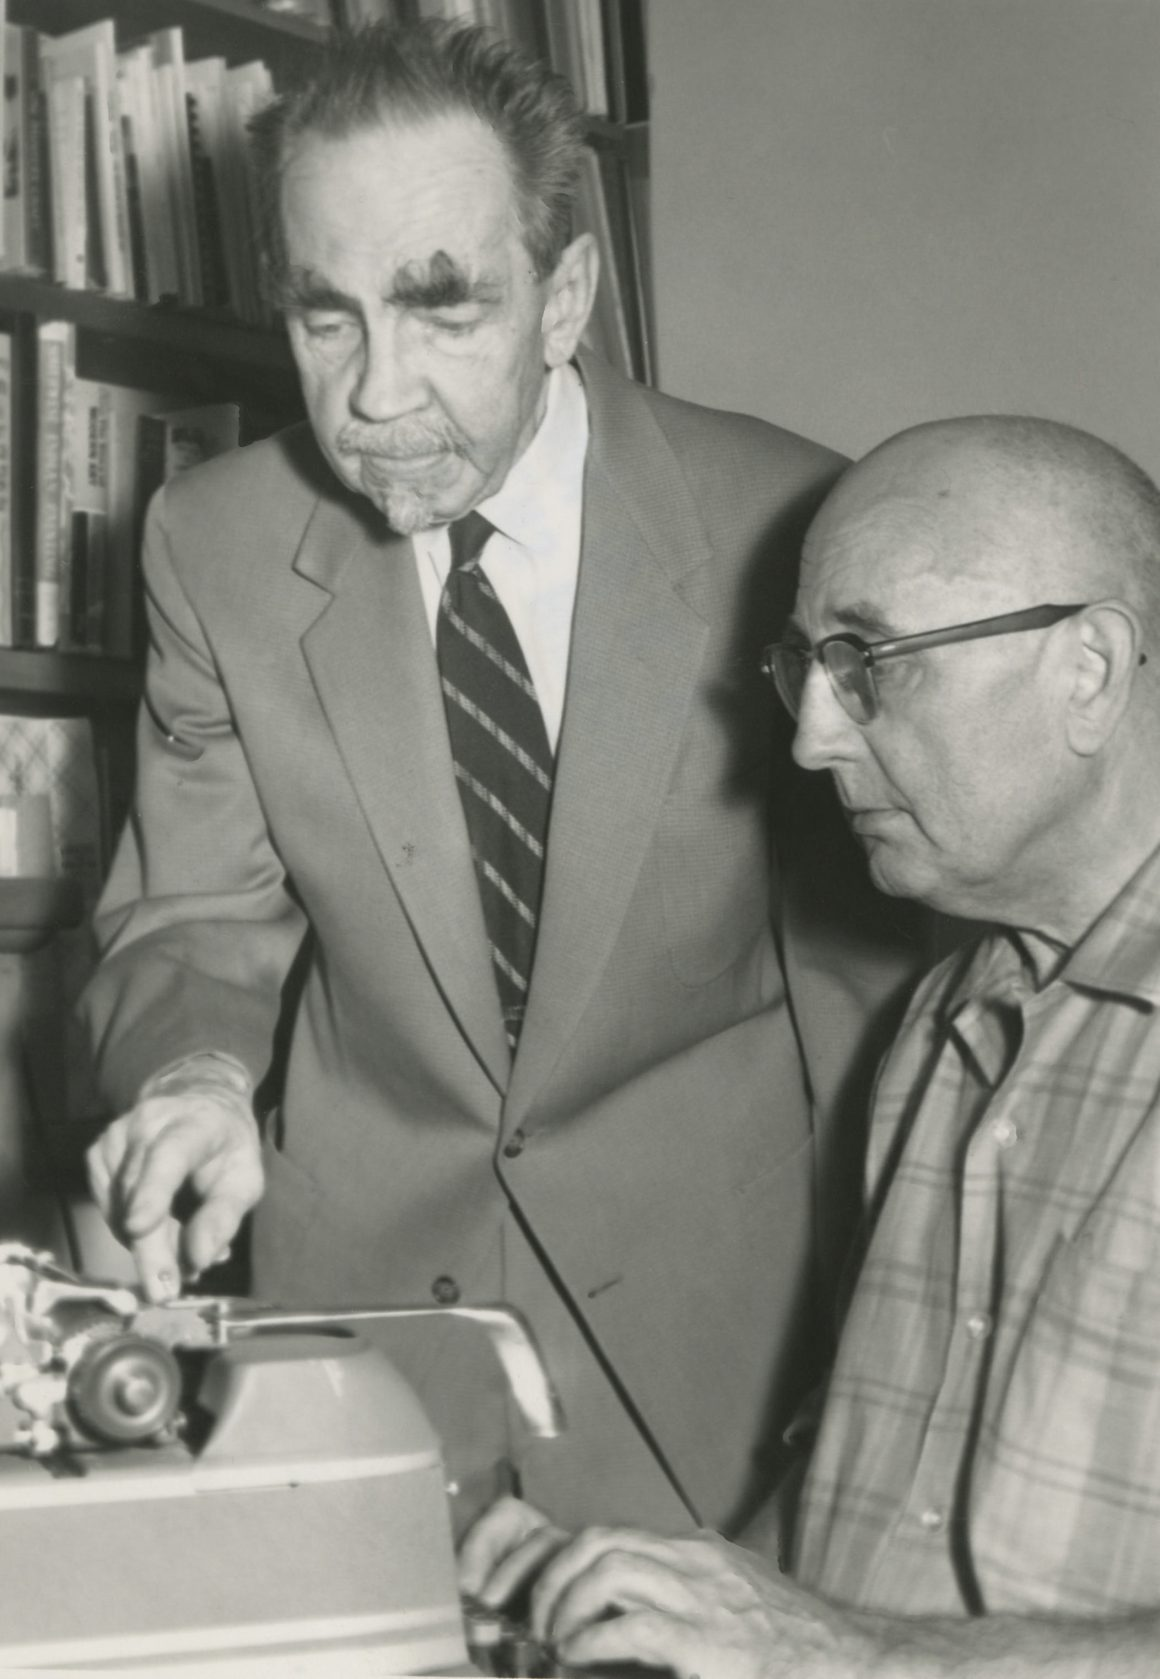 Black and white photograph of Raymond and Arthur Jonson in 1963.